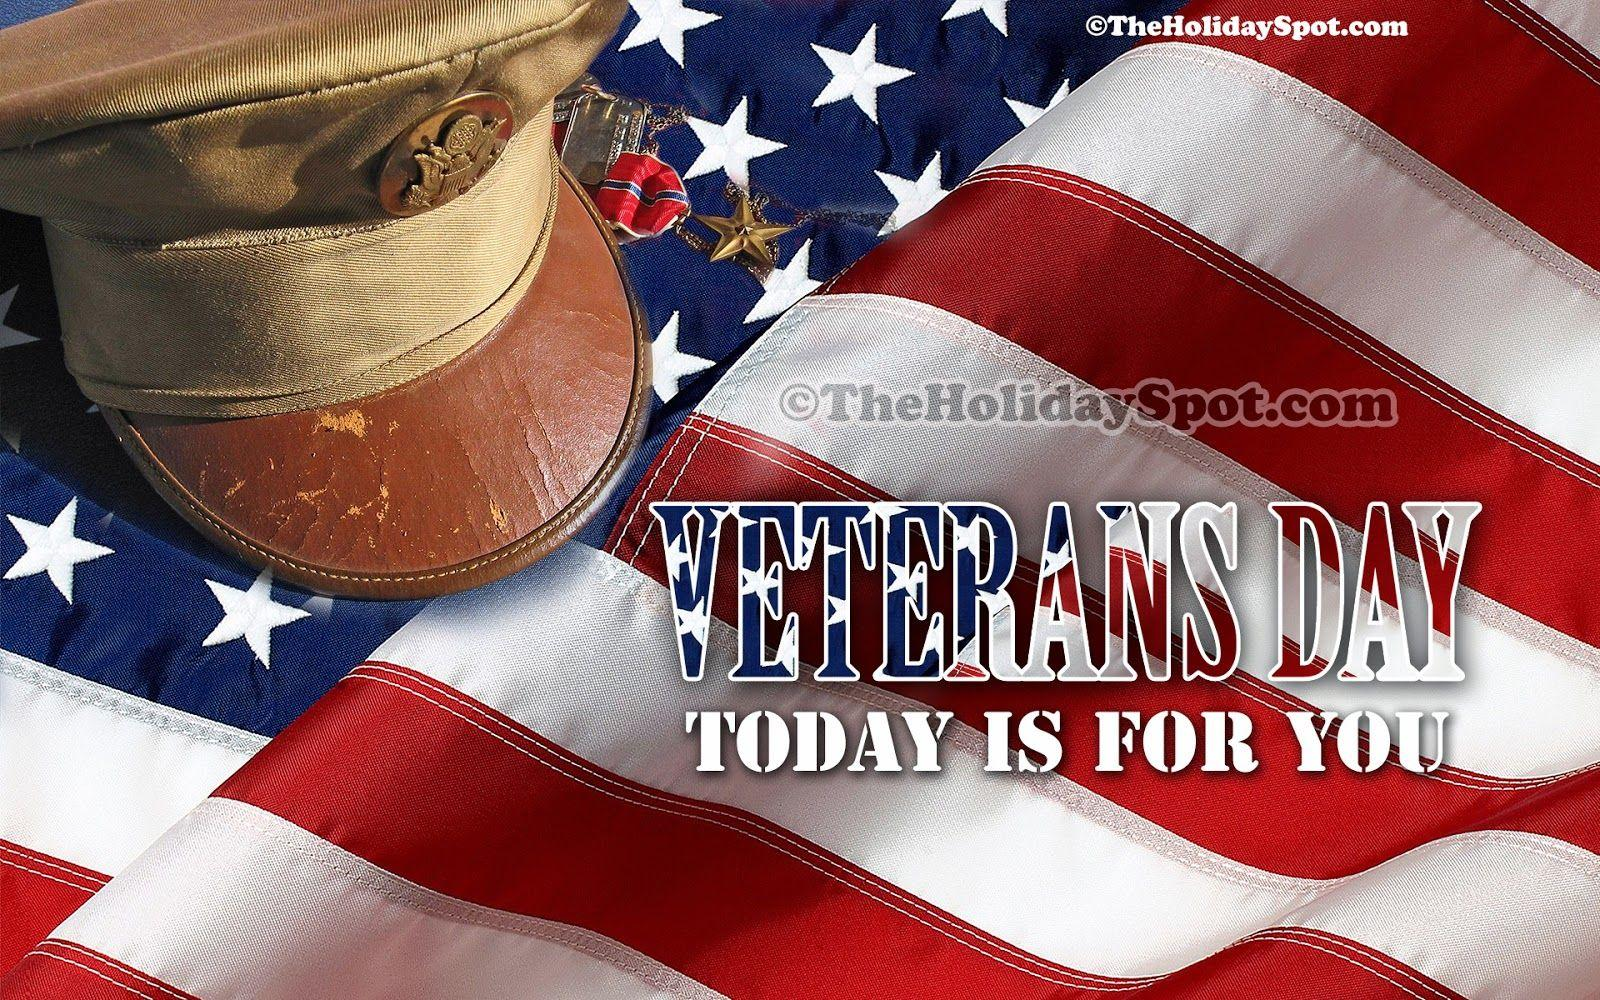 Happy Veterans Day Thank You wallpaper. | HD Wallpapers ...